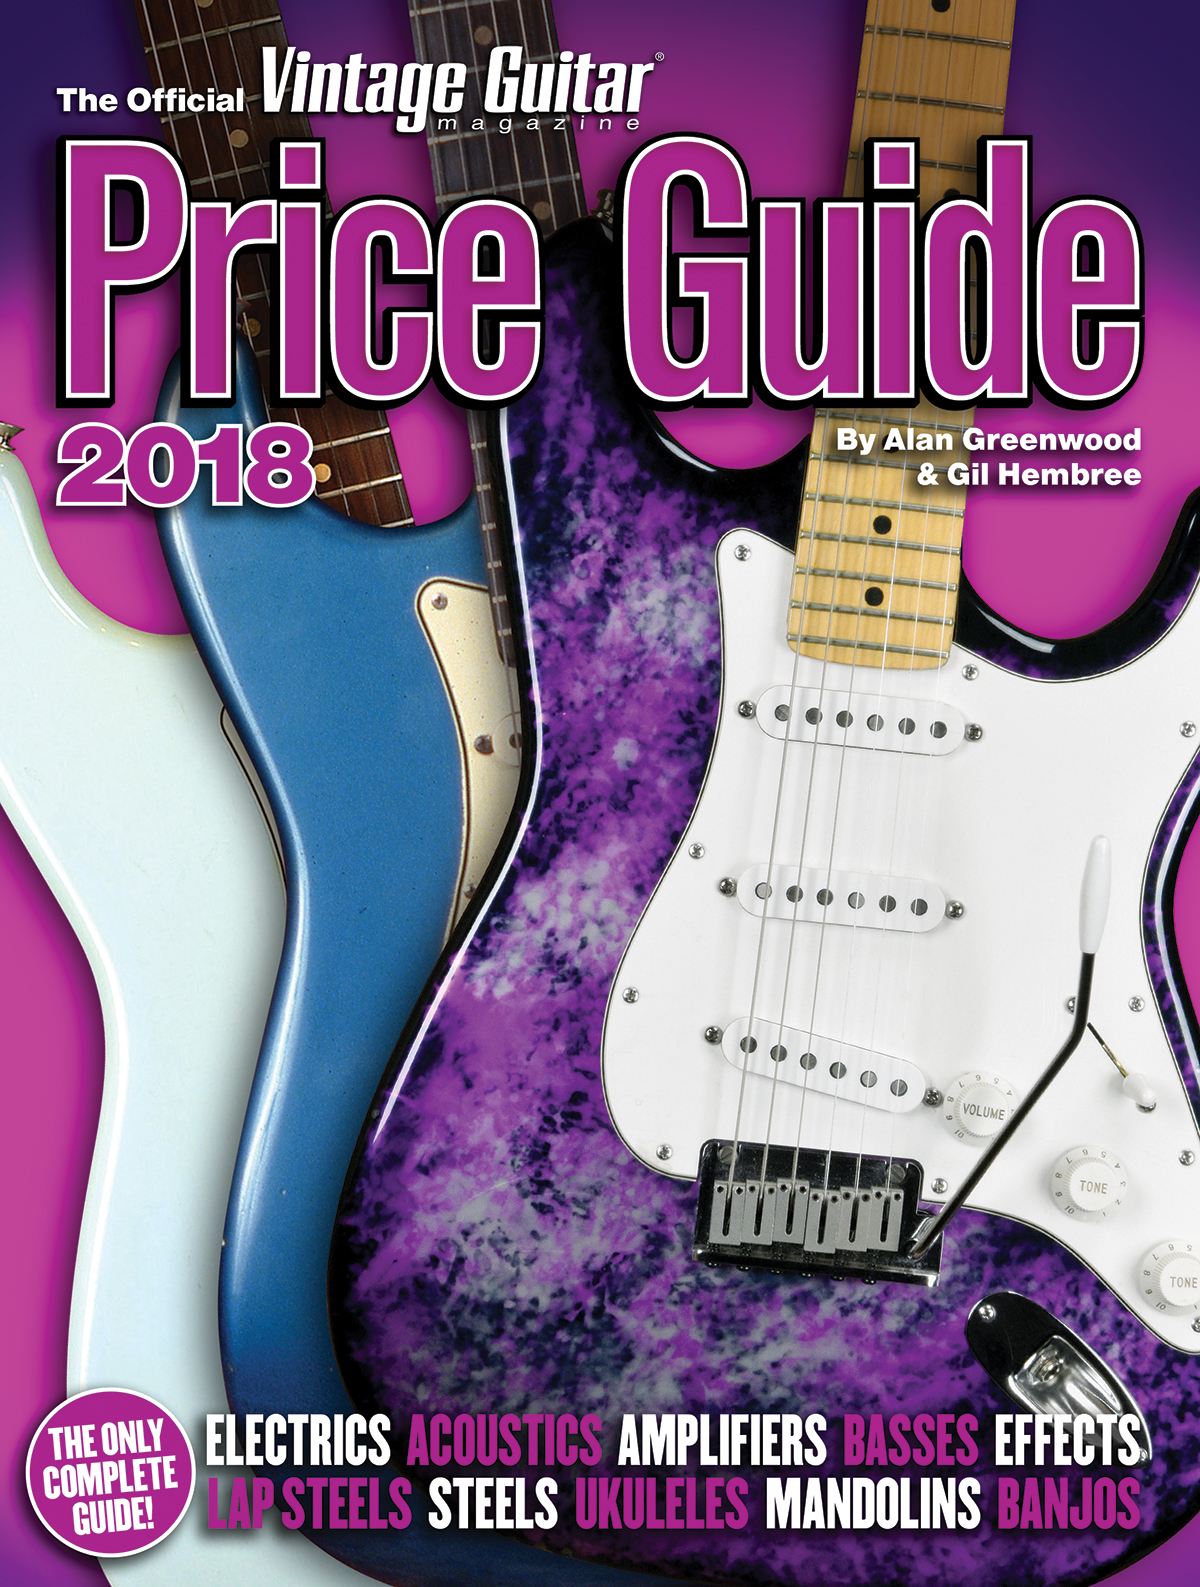 The Official Vintage Guitar Price Guide 2018